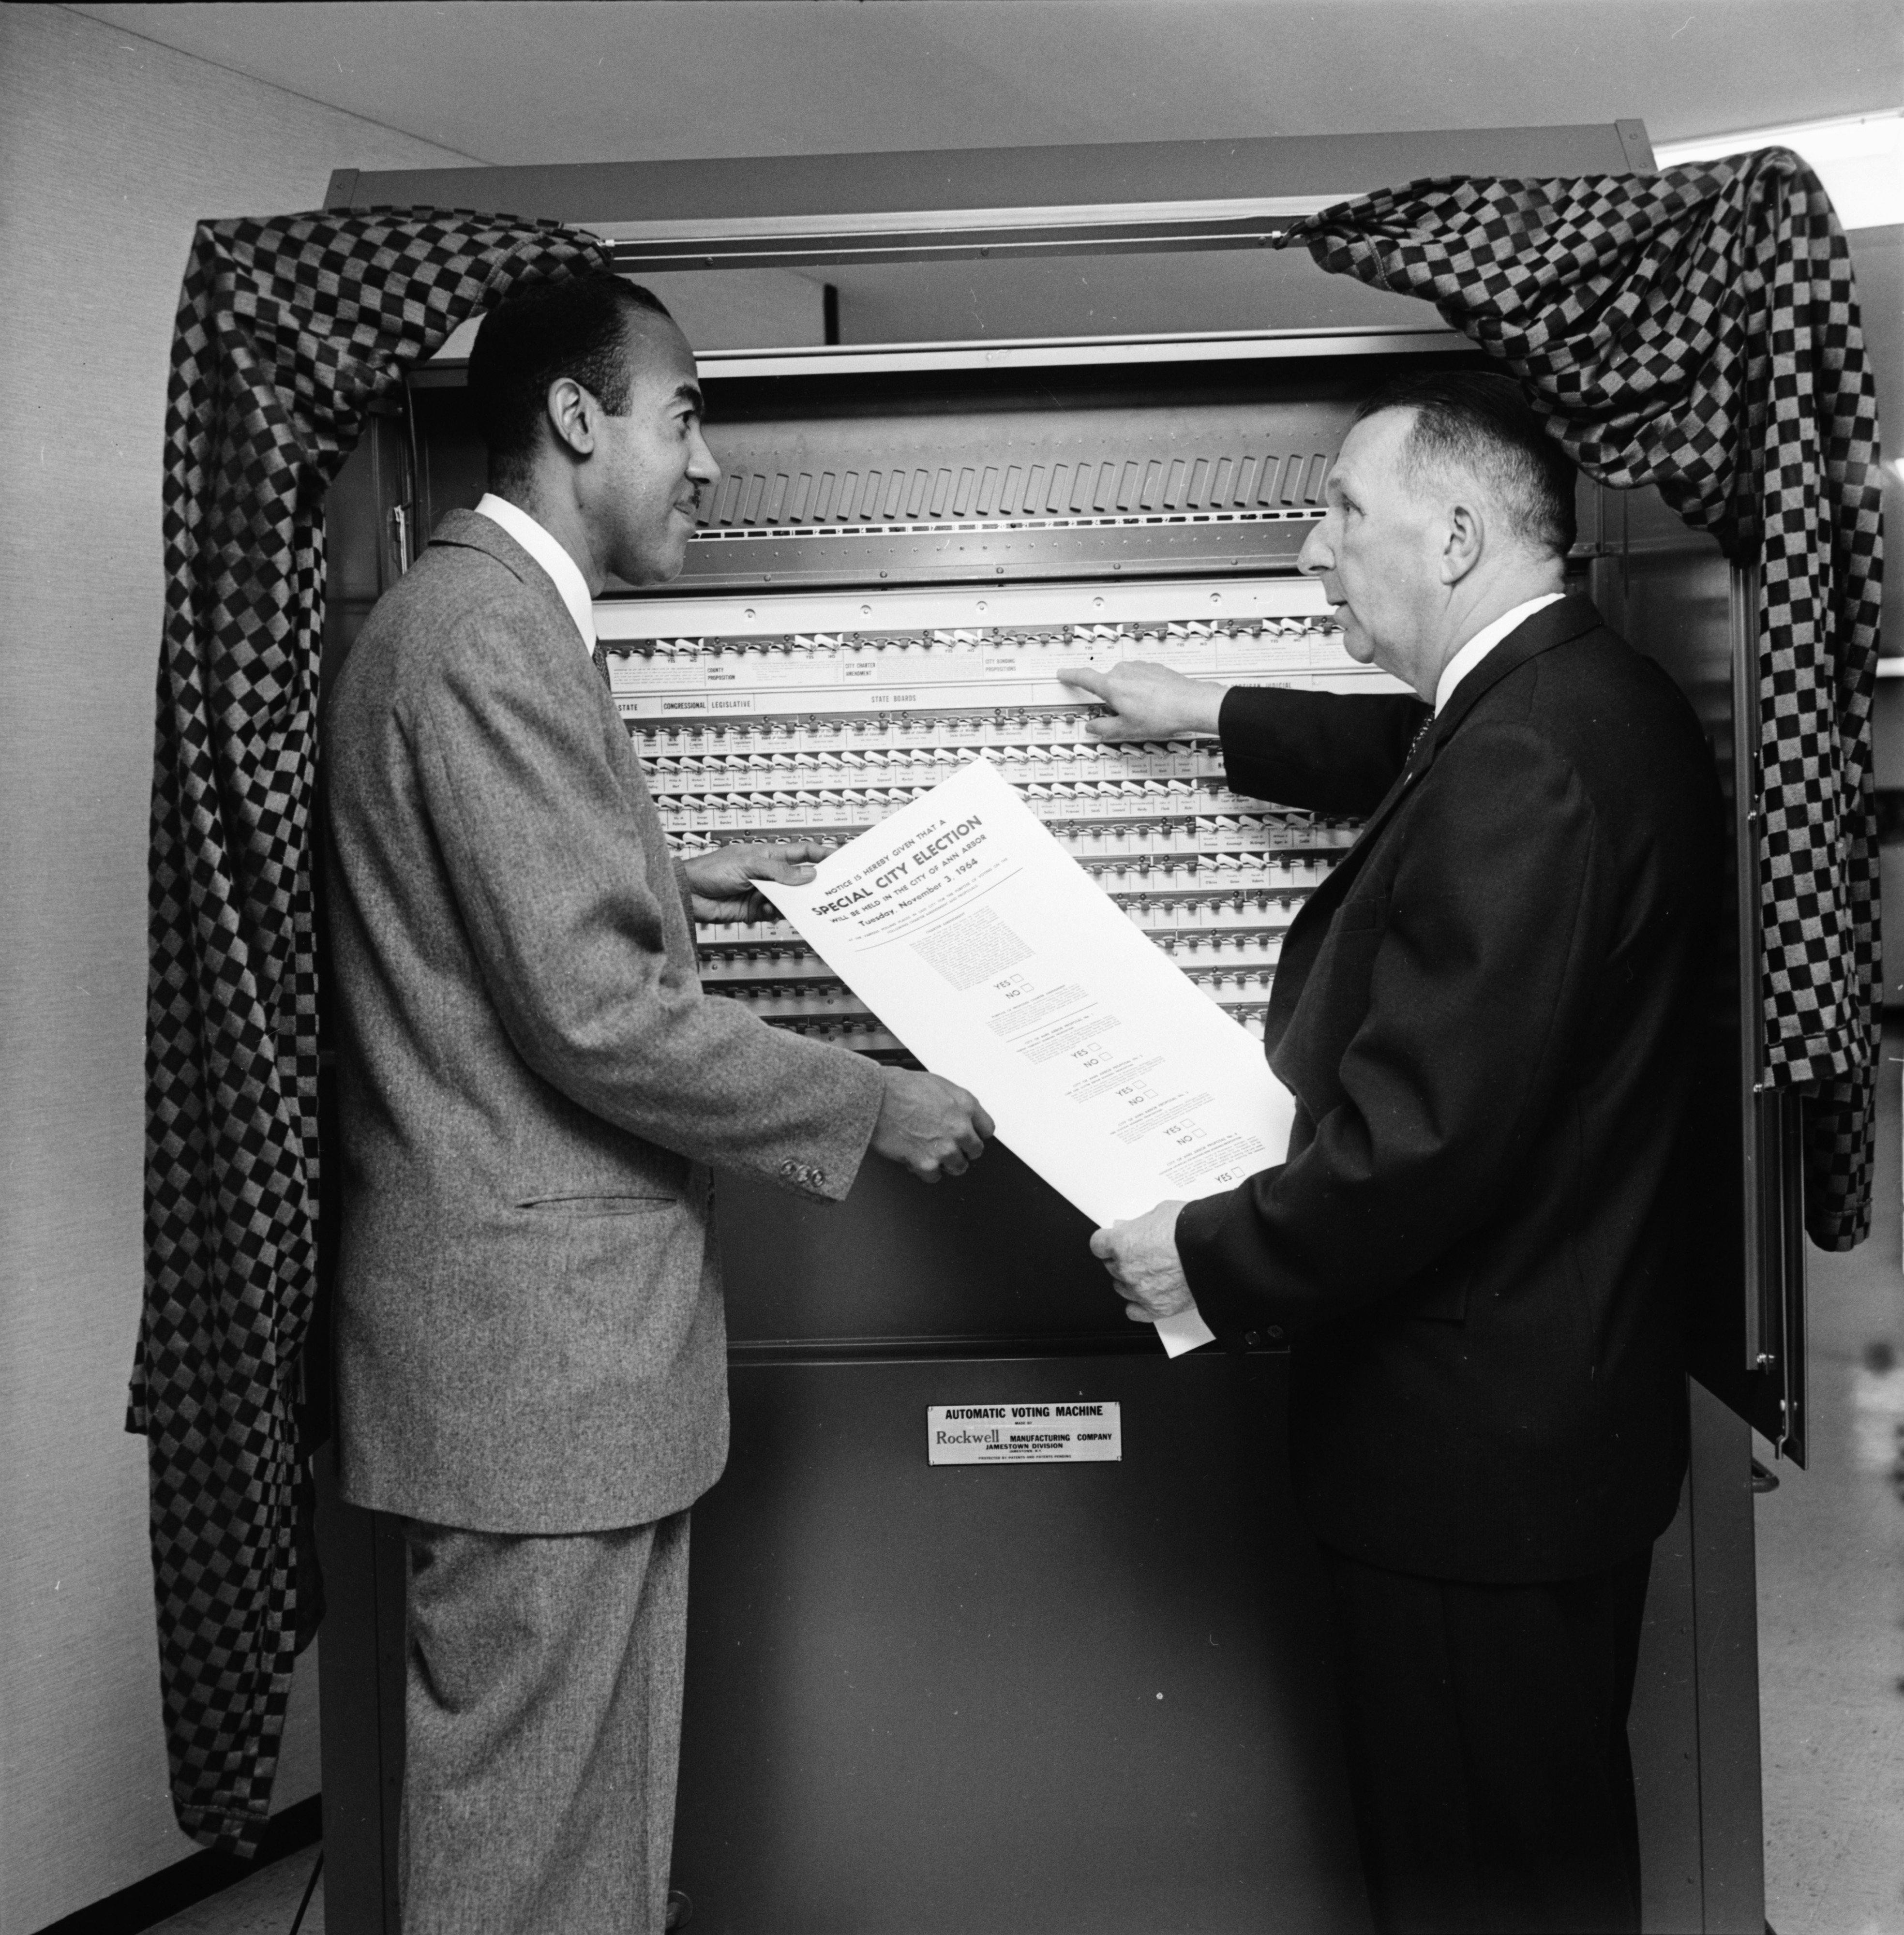 City Clerk Fred J. Looker and Walter Hill, director of the Ann Arbor Community Center, discuss public voter education program, October 1964 image